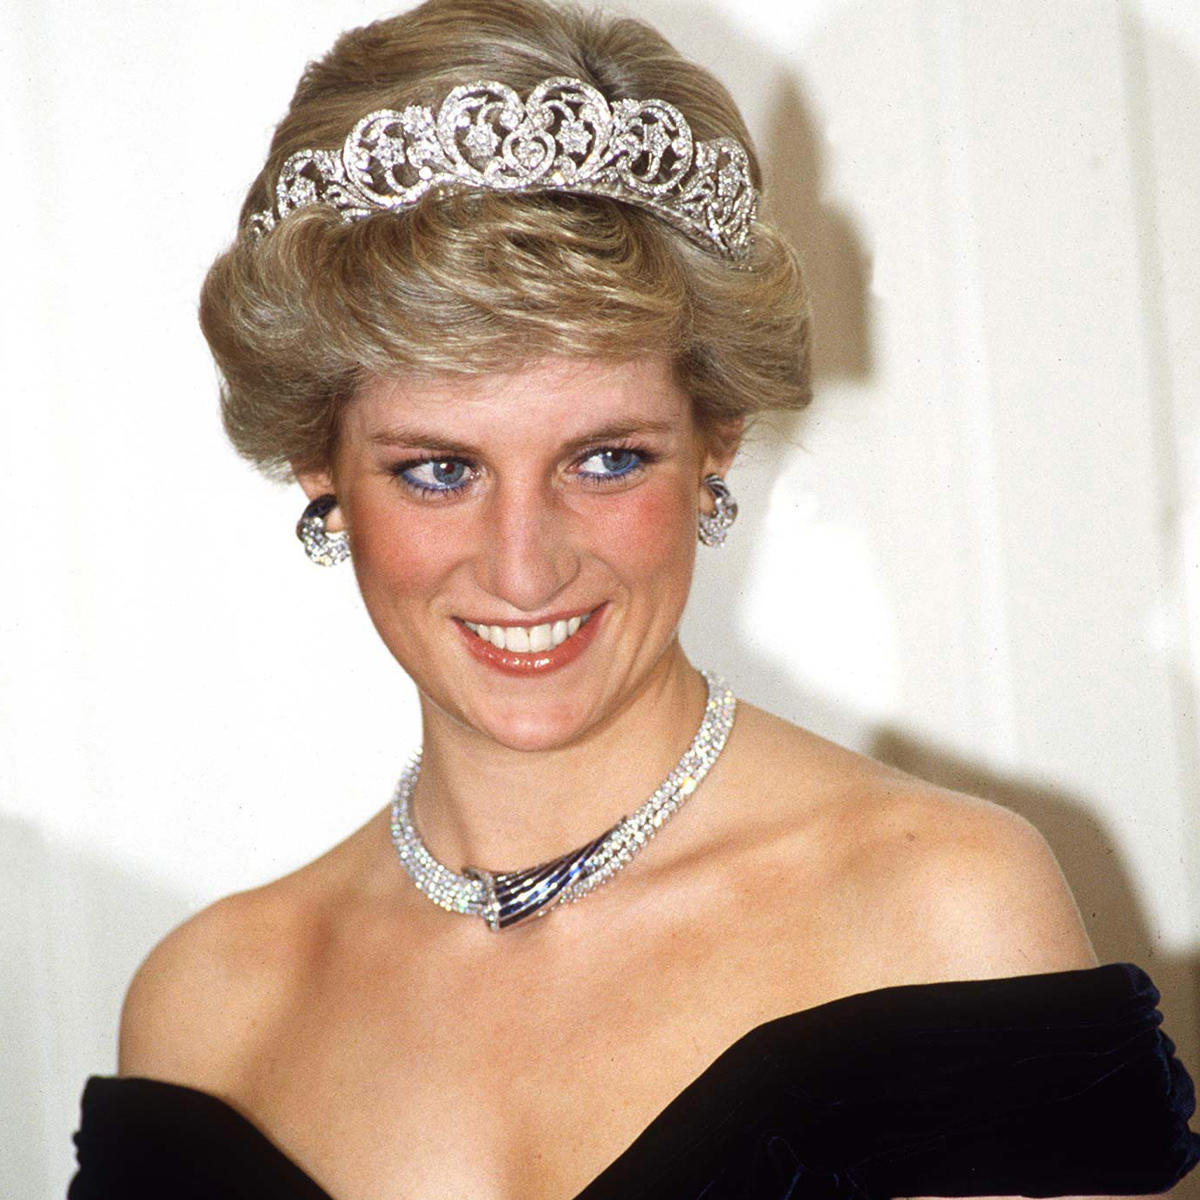 9. Princess Diana.